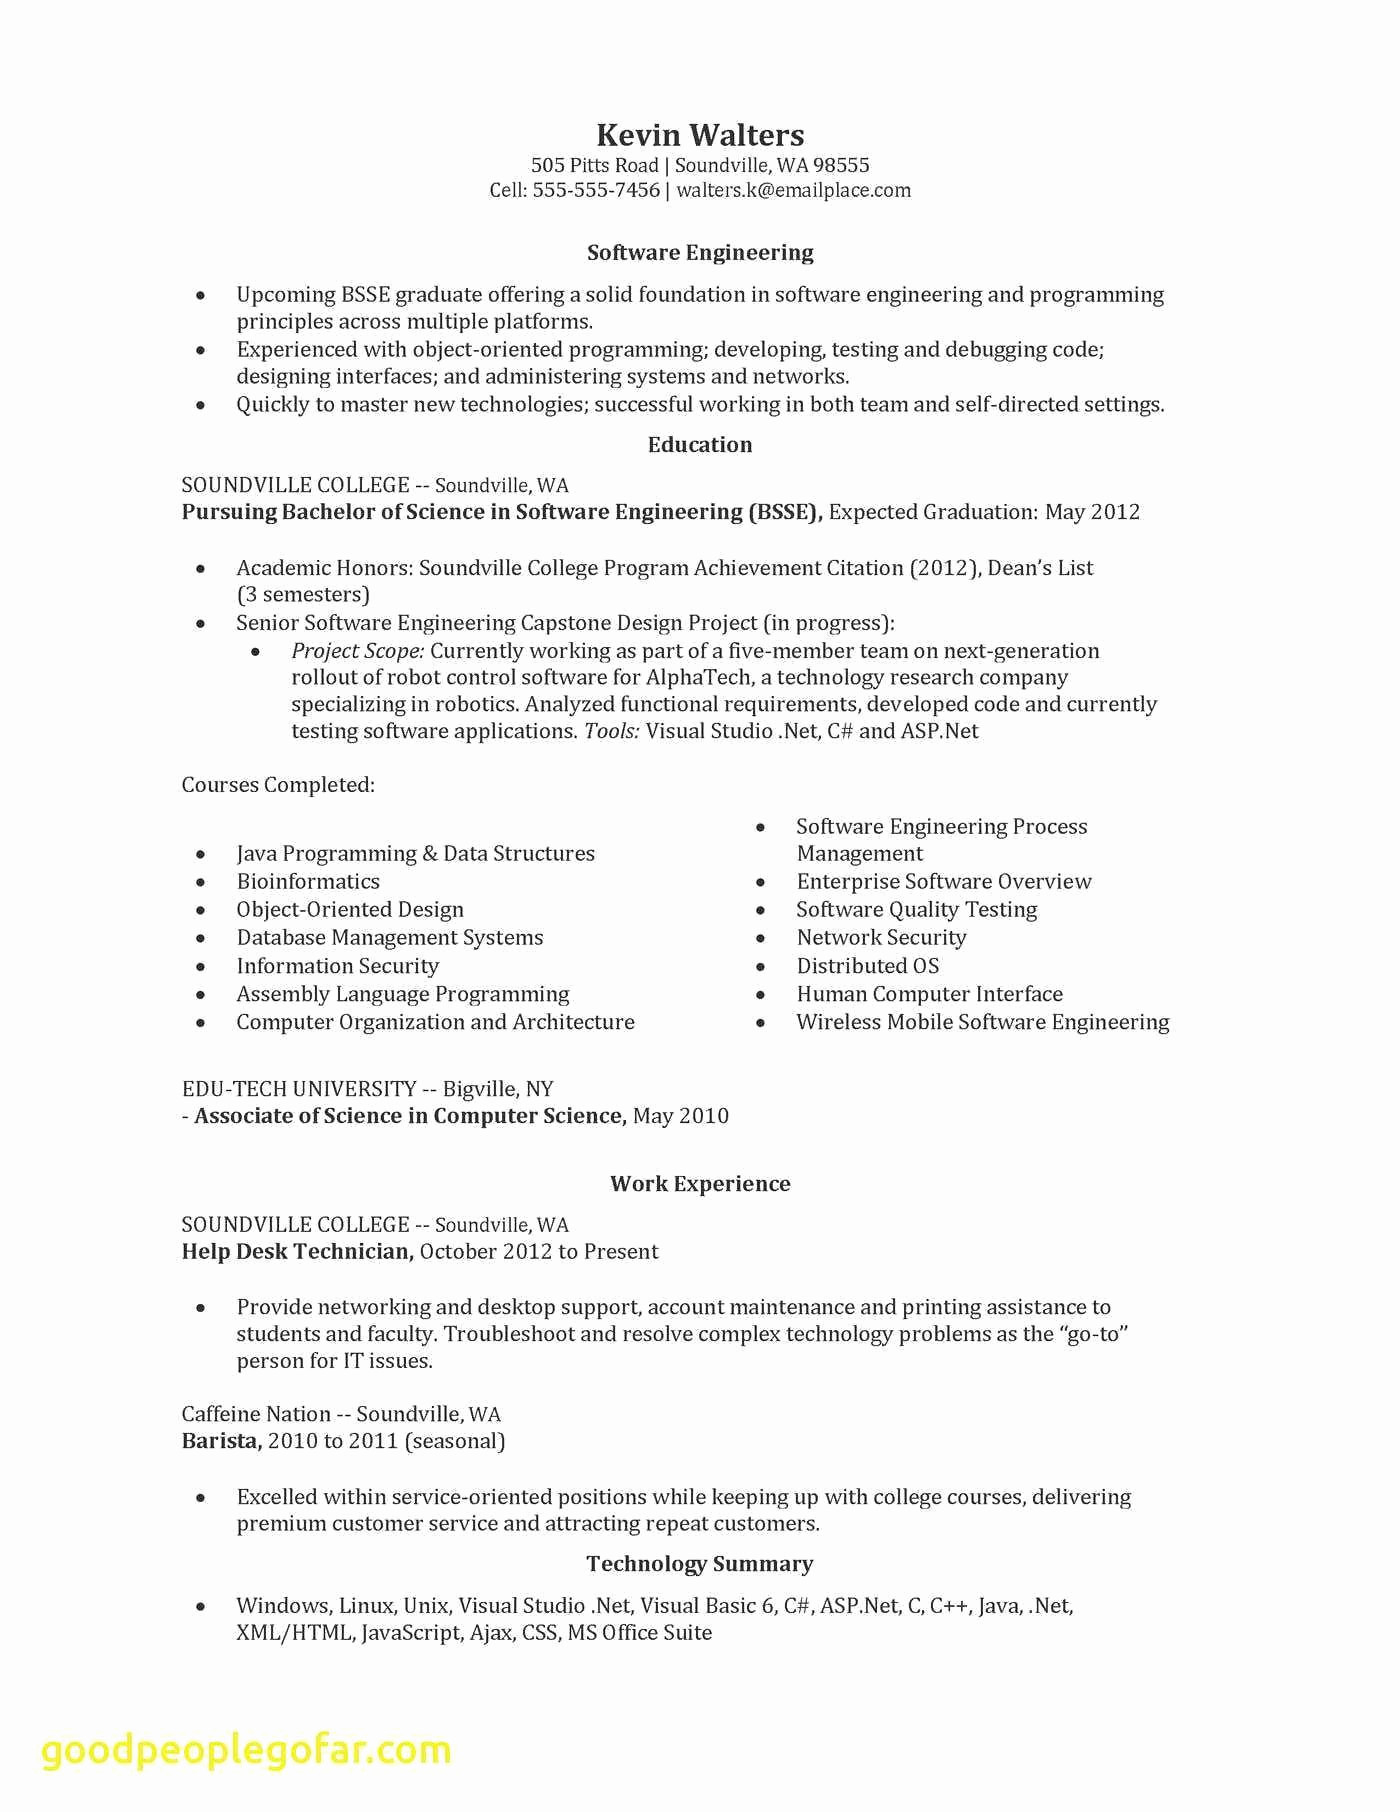 Utd Resume Template - 43 Awesome Engineering Resume Templates Puter Template Puter